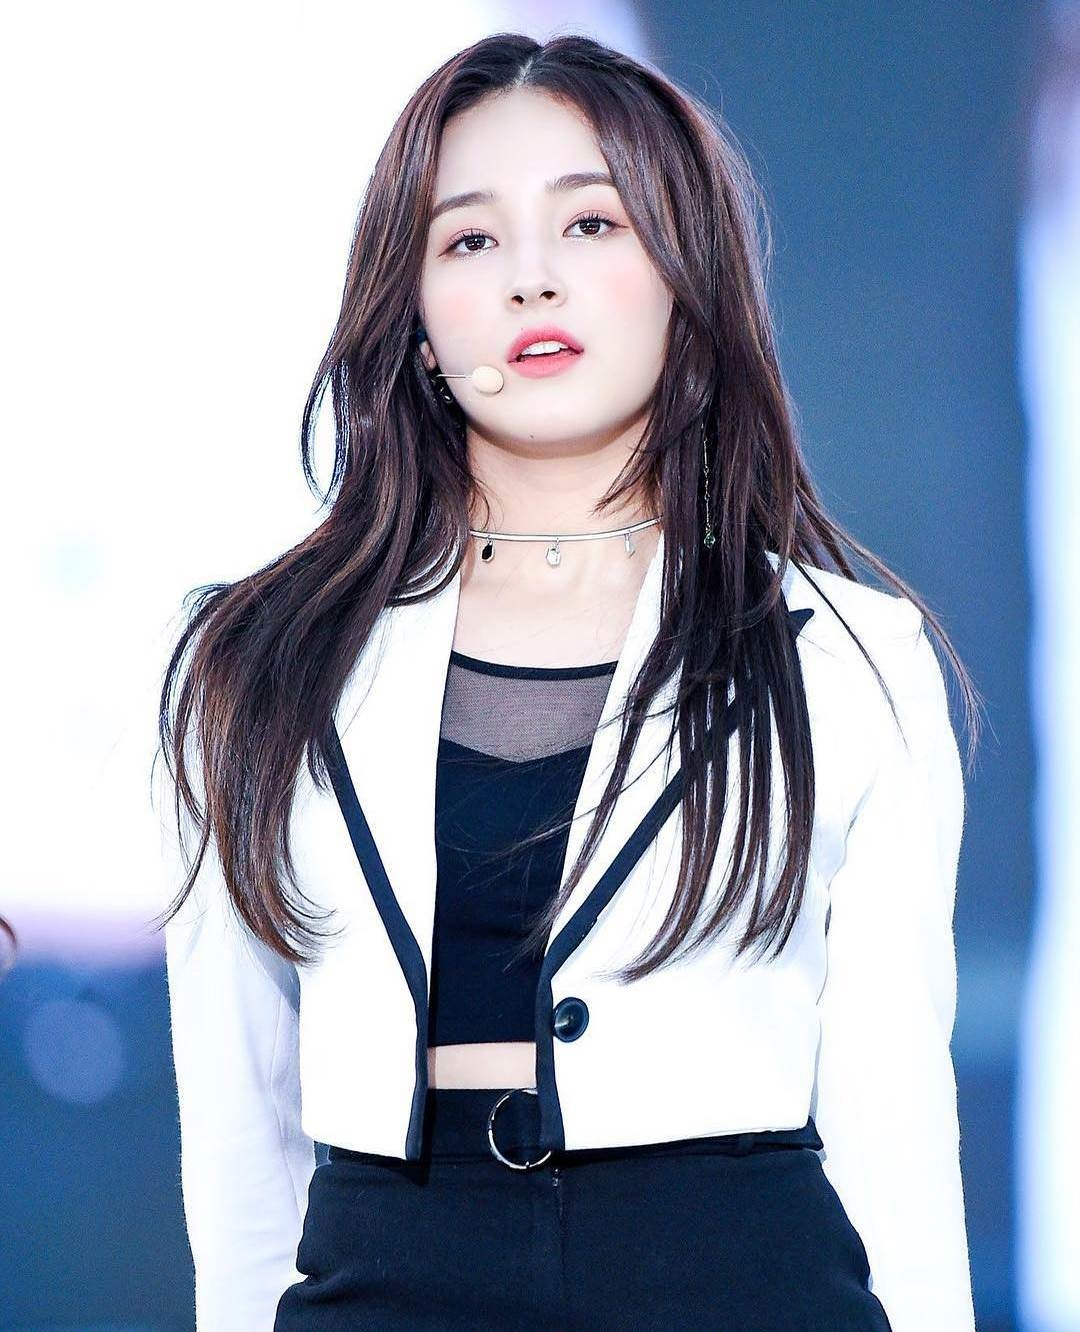 Nancy_Momoland_images_for_mobile